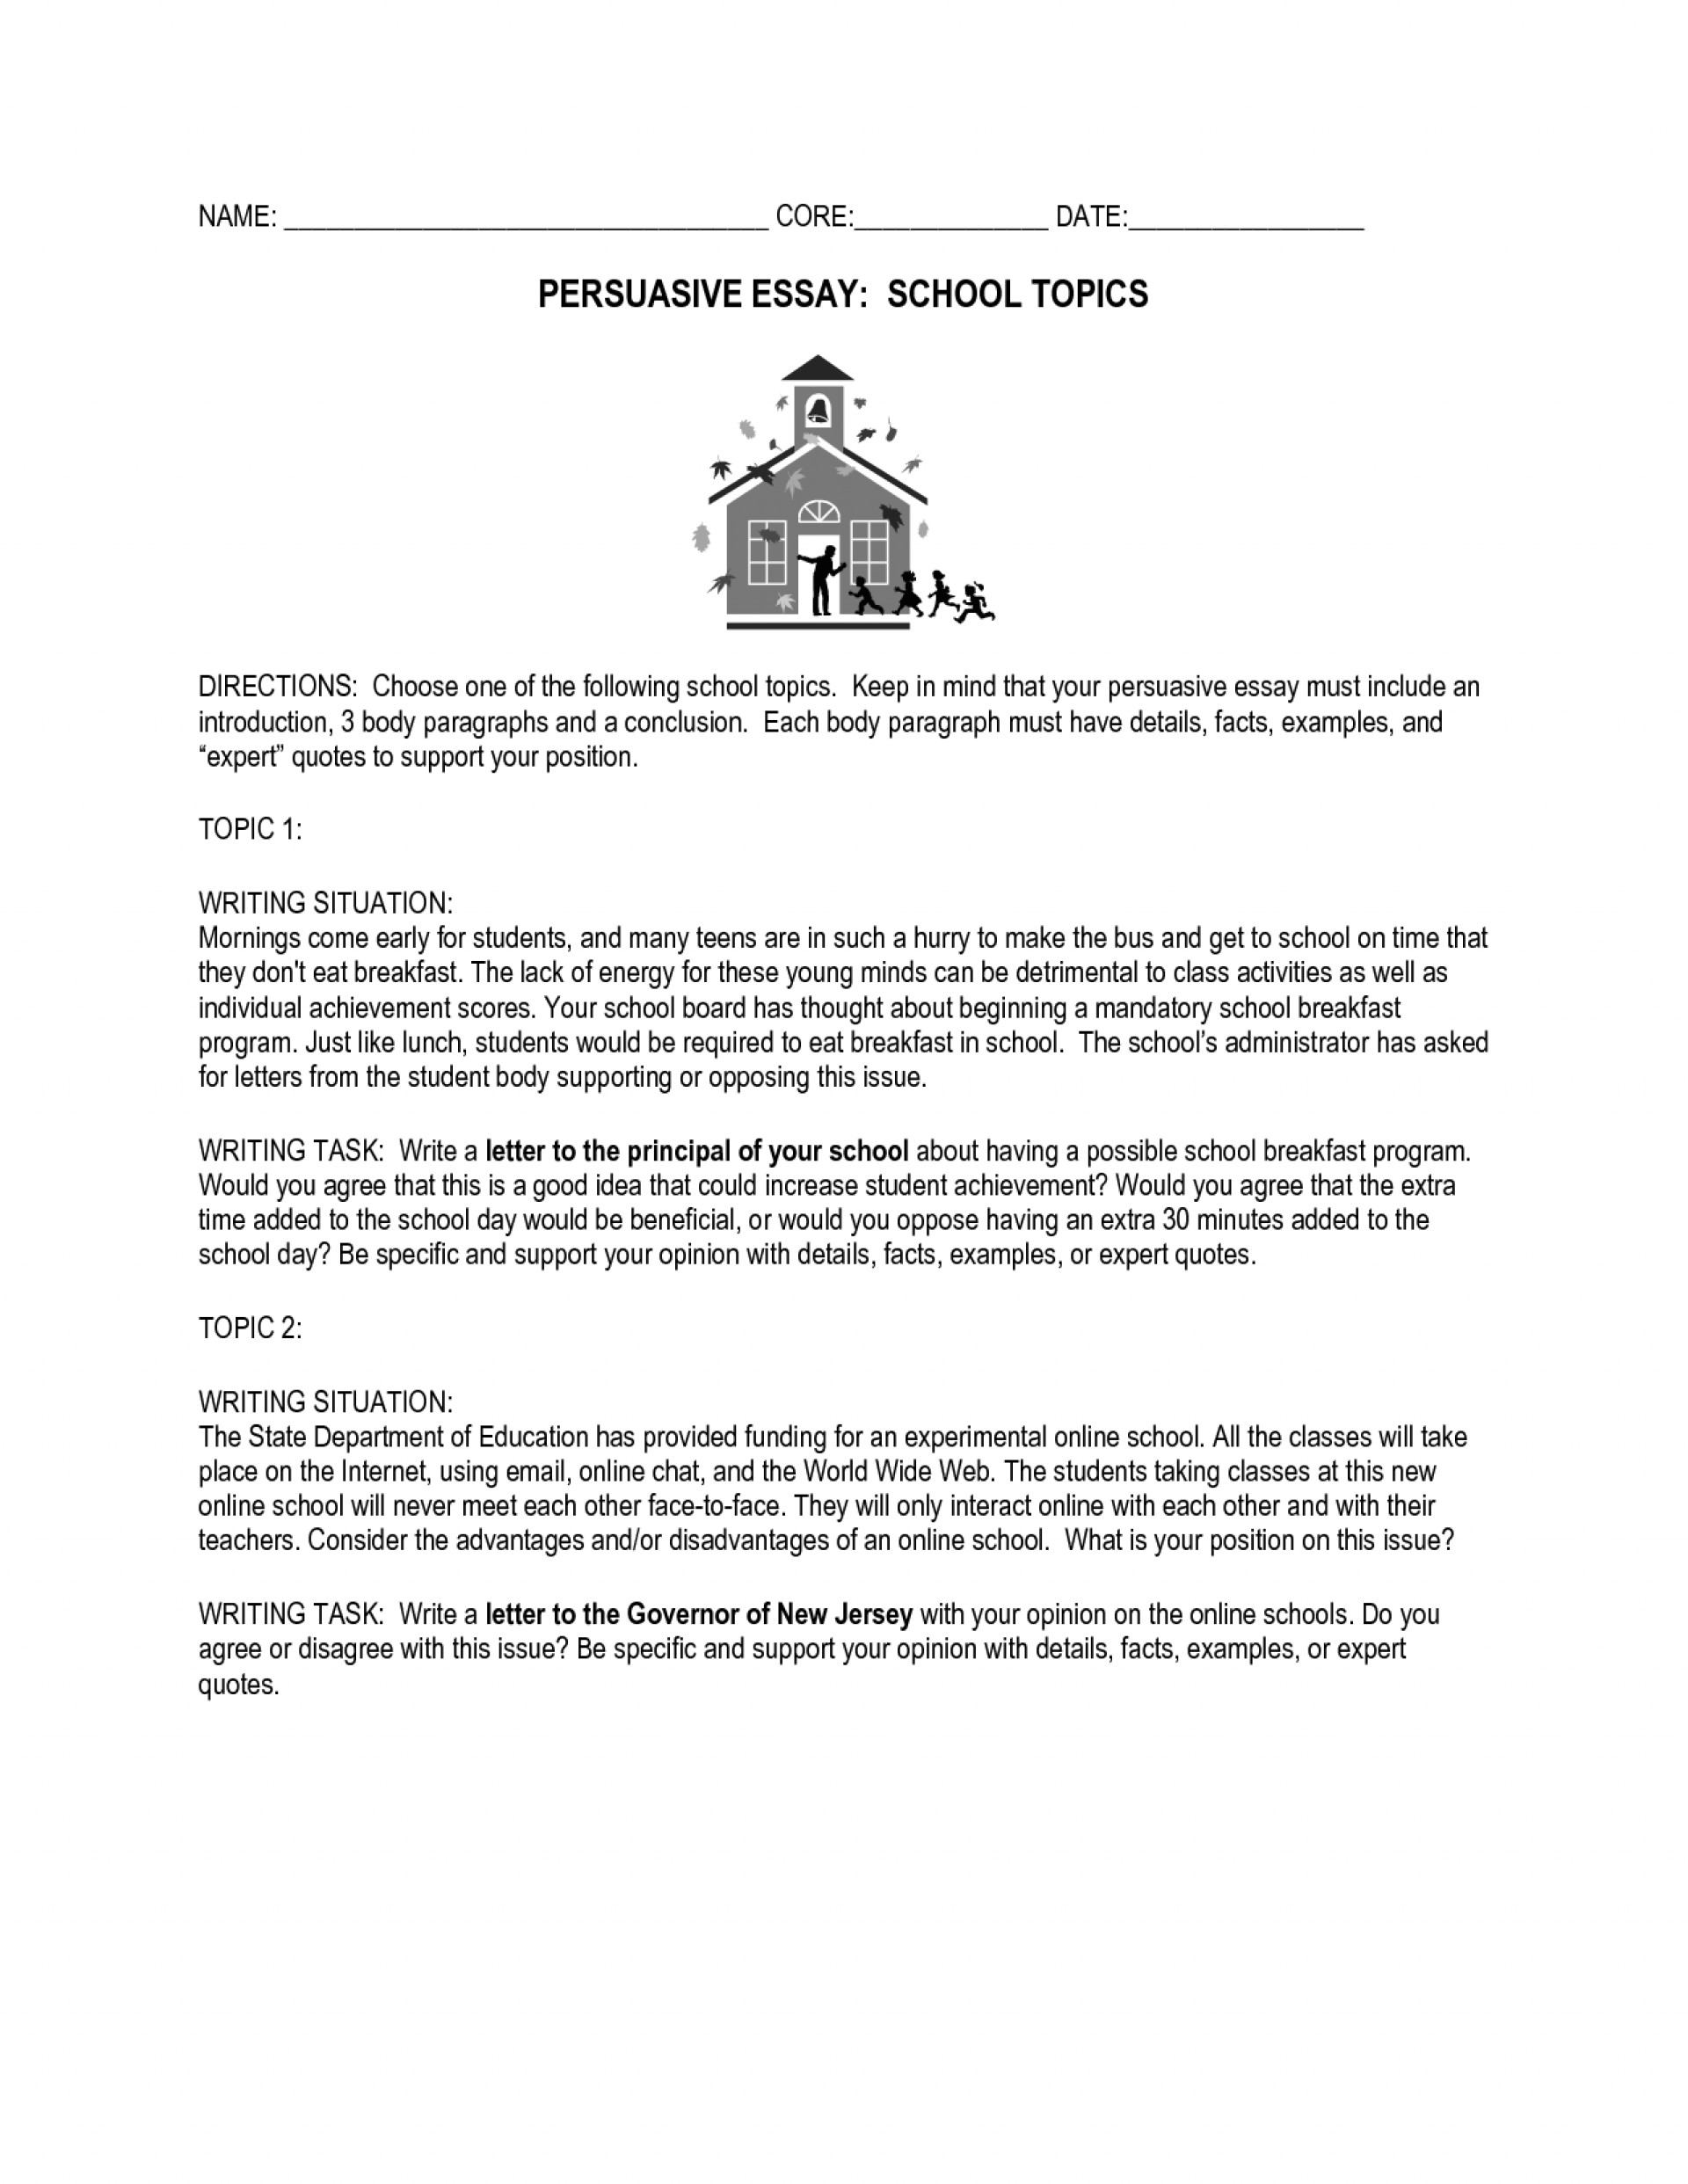 014 Conclusion To Persuasive Essay Writing An Argumentative On School Outstanding Great Conclusions Essays Paragraph Example The Strongest A 1920